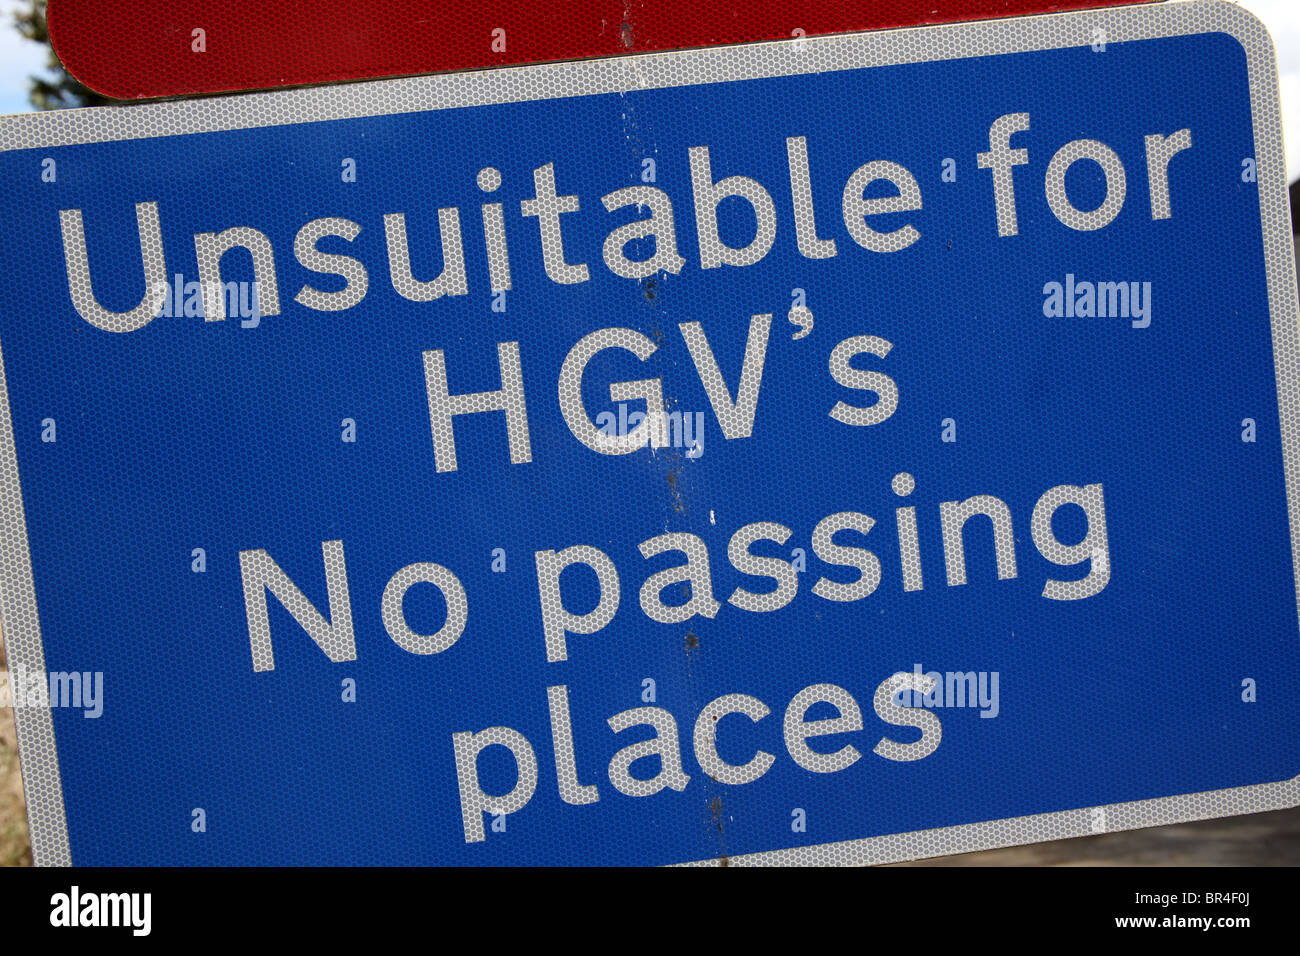 Unsuitable for Heavy Goods Vehicles Sign - Stock Image